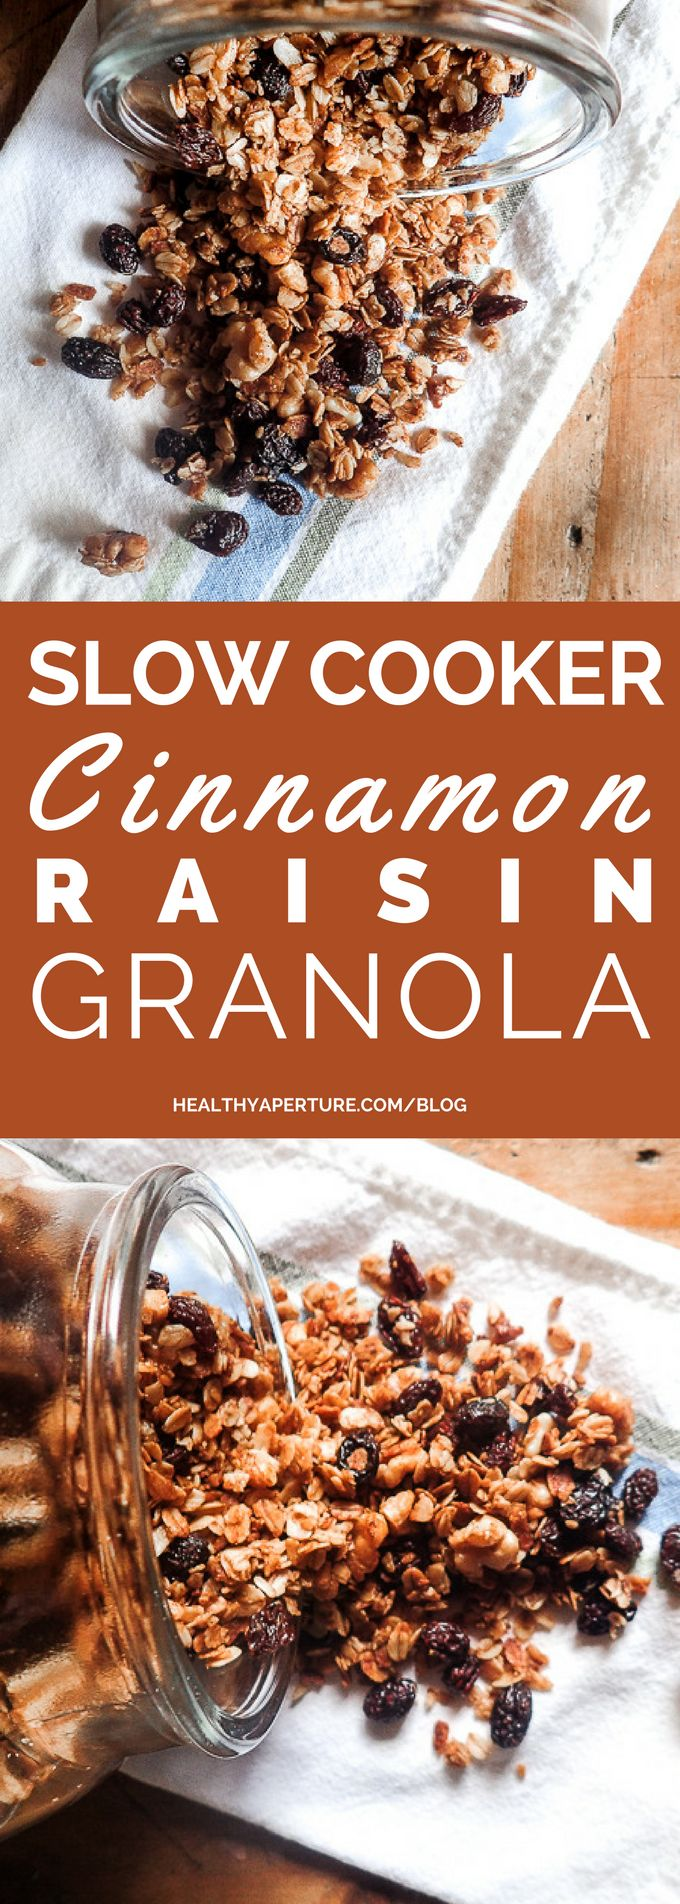 Check out this Slow Cooker Cinnamon Raisin Granola recipe. It's got just the right amount of crunch and sweetness.